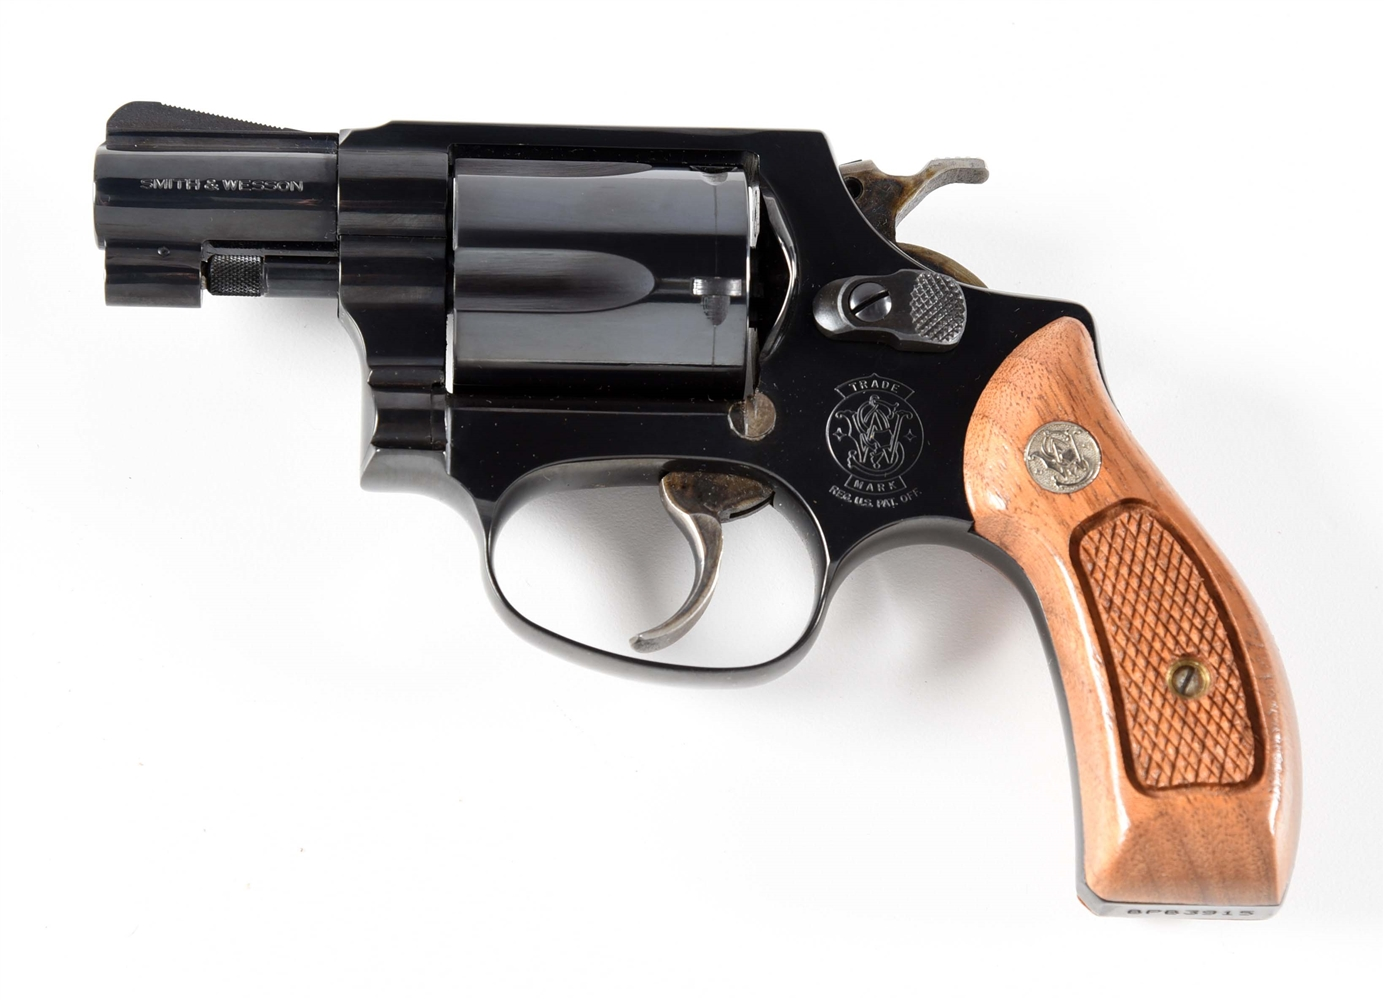 (M) SMITH & WESSON MODEL 36-7 CHIEFS SPECIAL DOUBLE ACTION .38 REVOLVER.